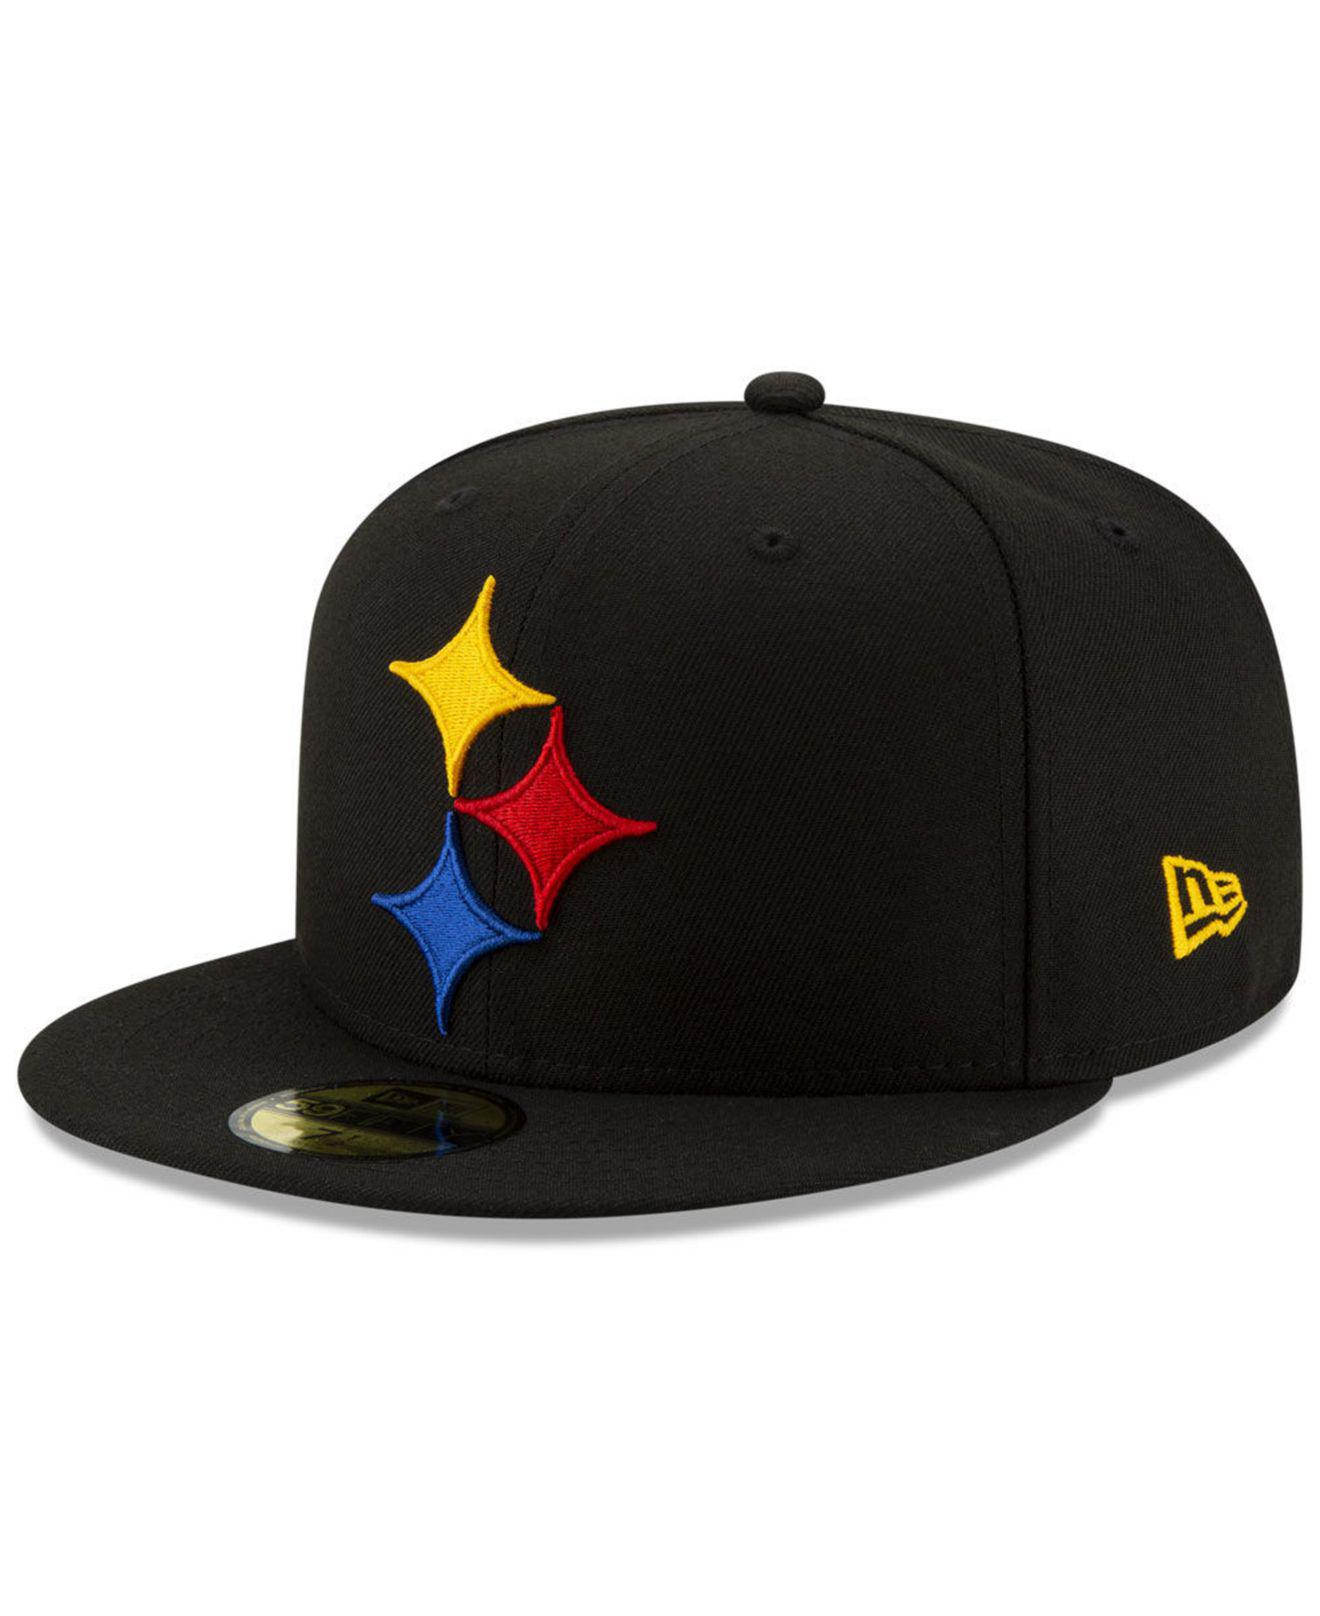 d50f86b44ce KTZ - Black Pittsburgh Steelers Logo Elements Collection 59fifty Fitted Cap  - Lyst. View fullscreen